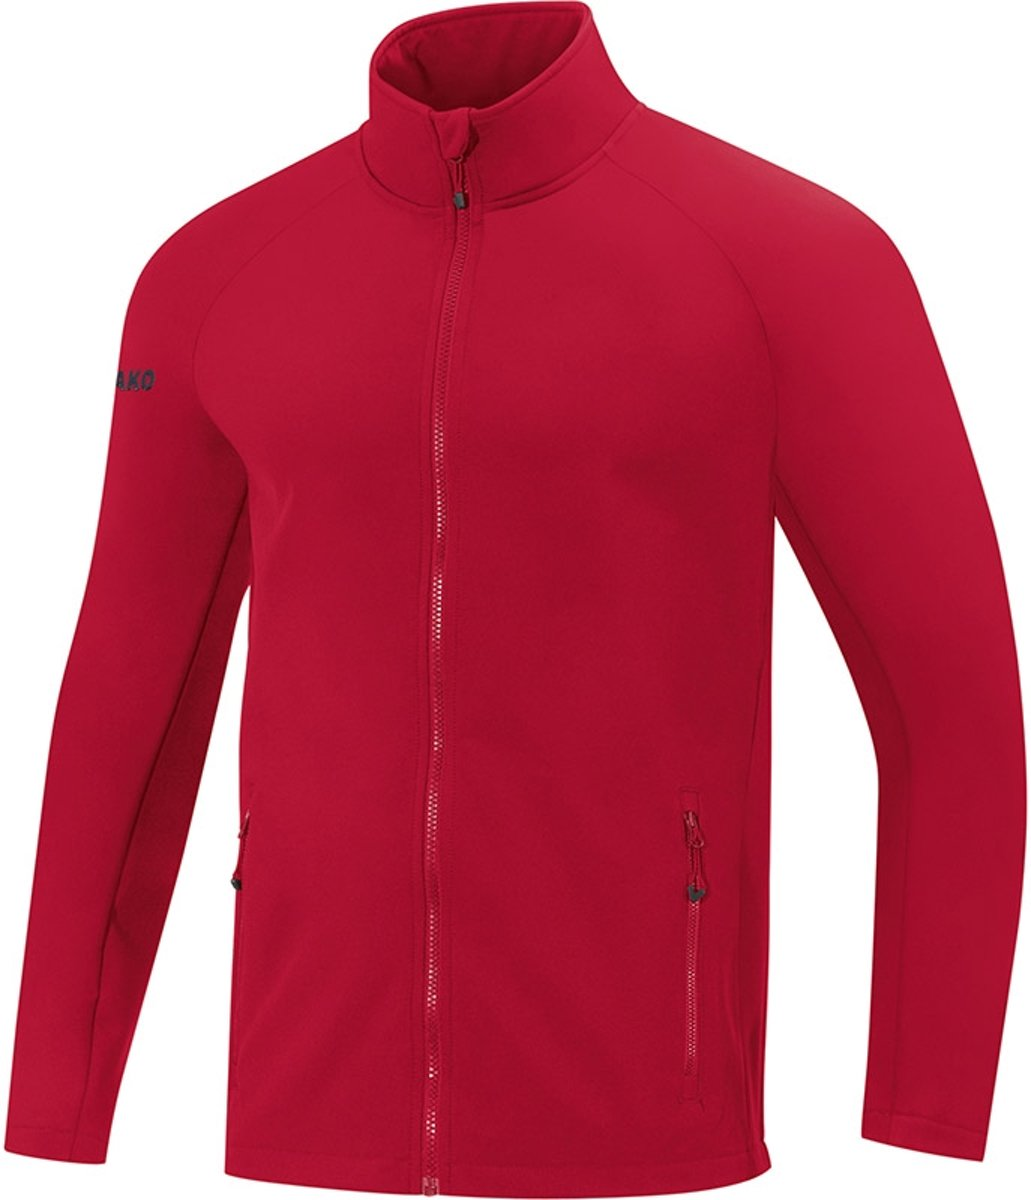 Jako Team Dames Softshell Jas - Softshelljassen  - rood - 34